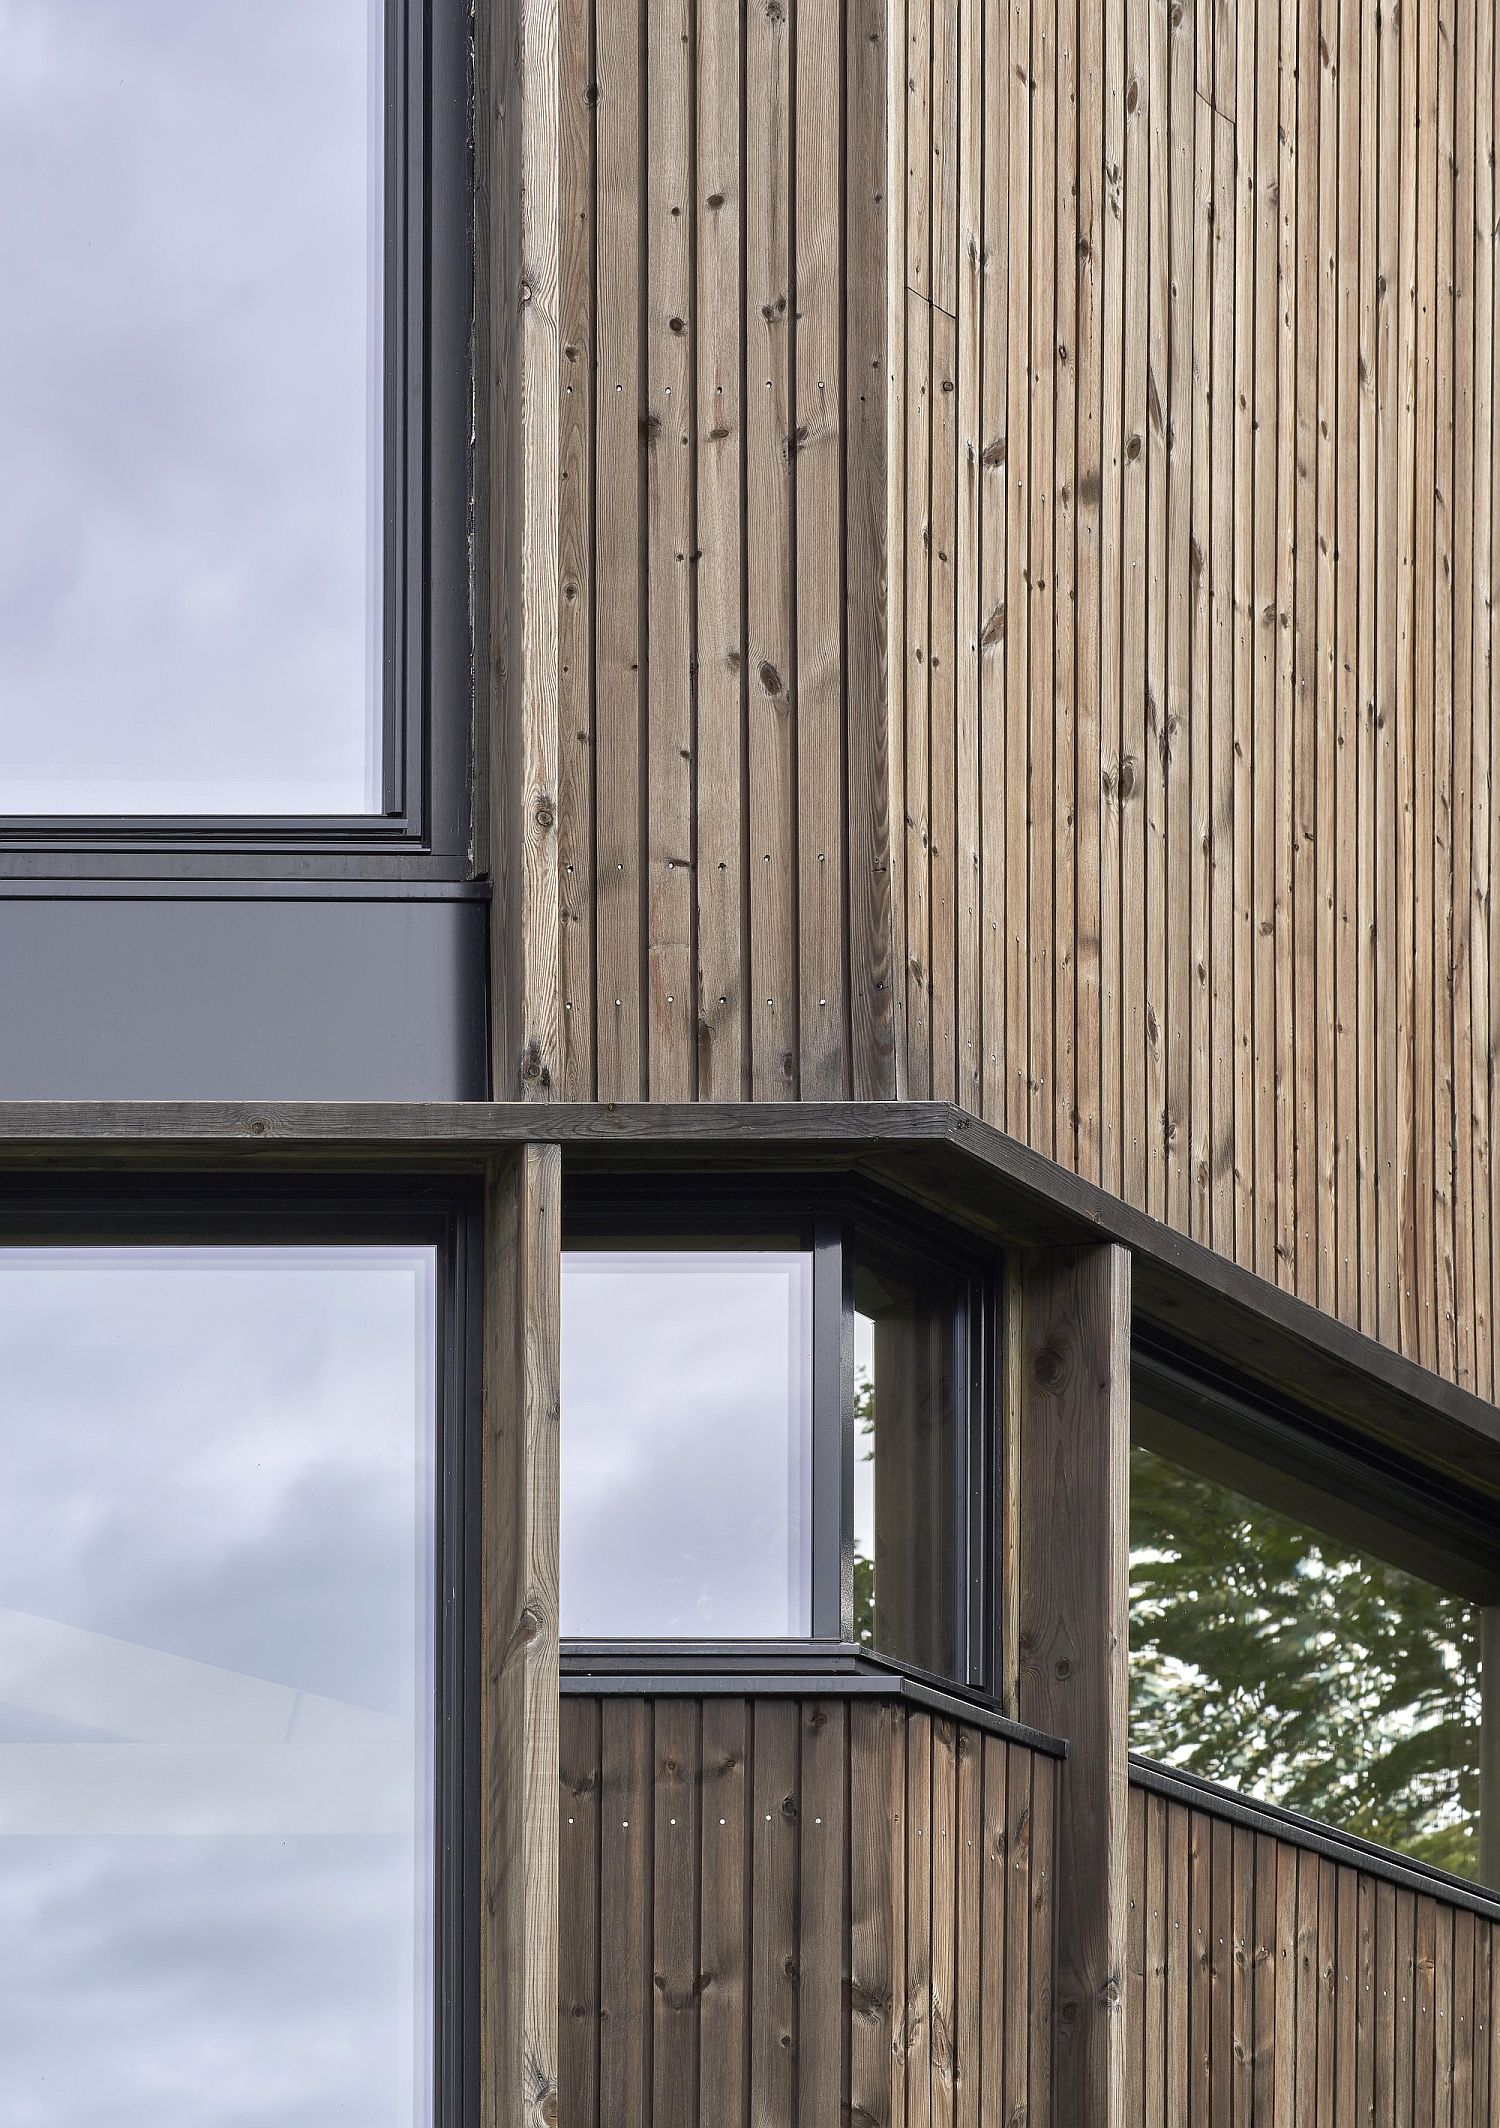 Closer look at the glass and wood home exterior